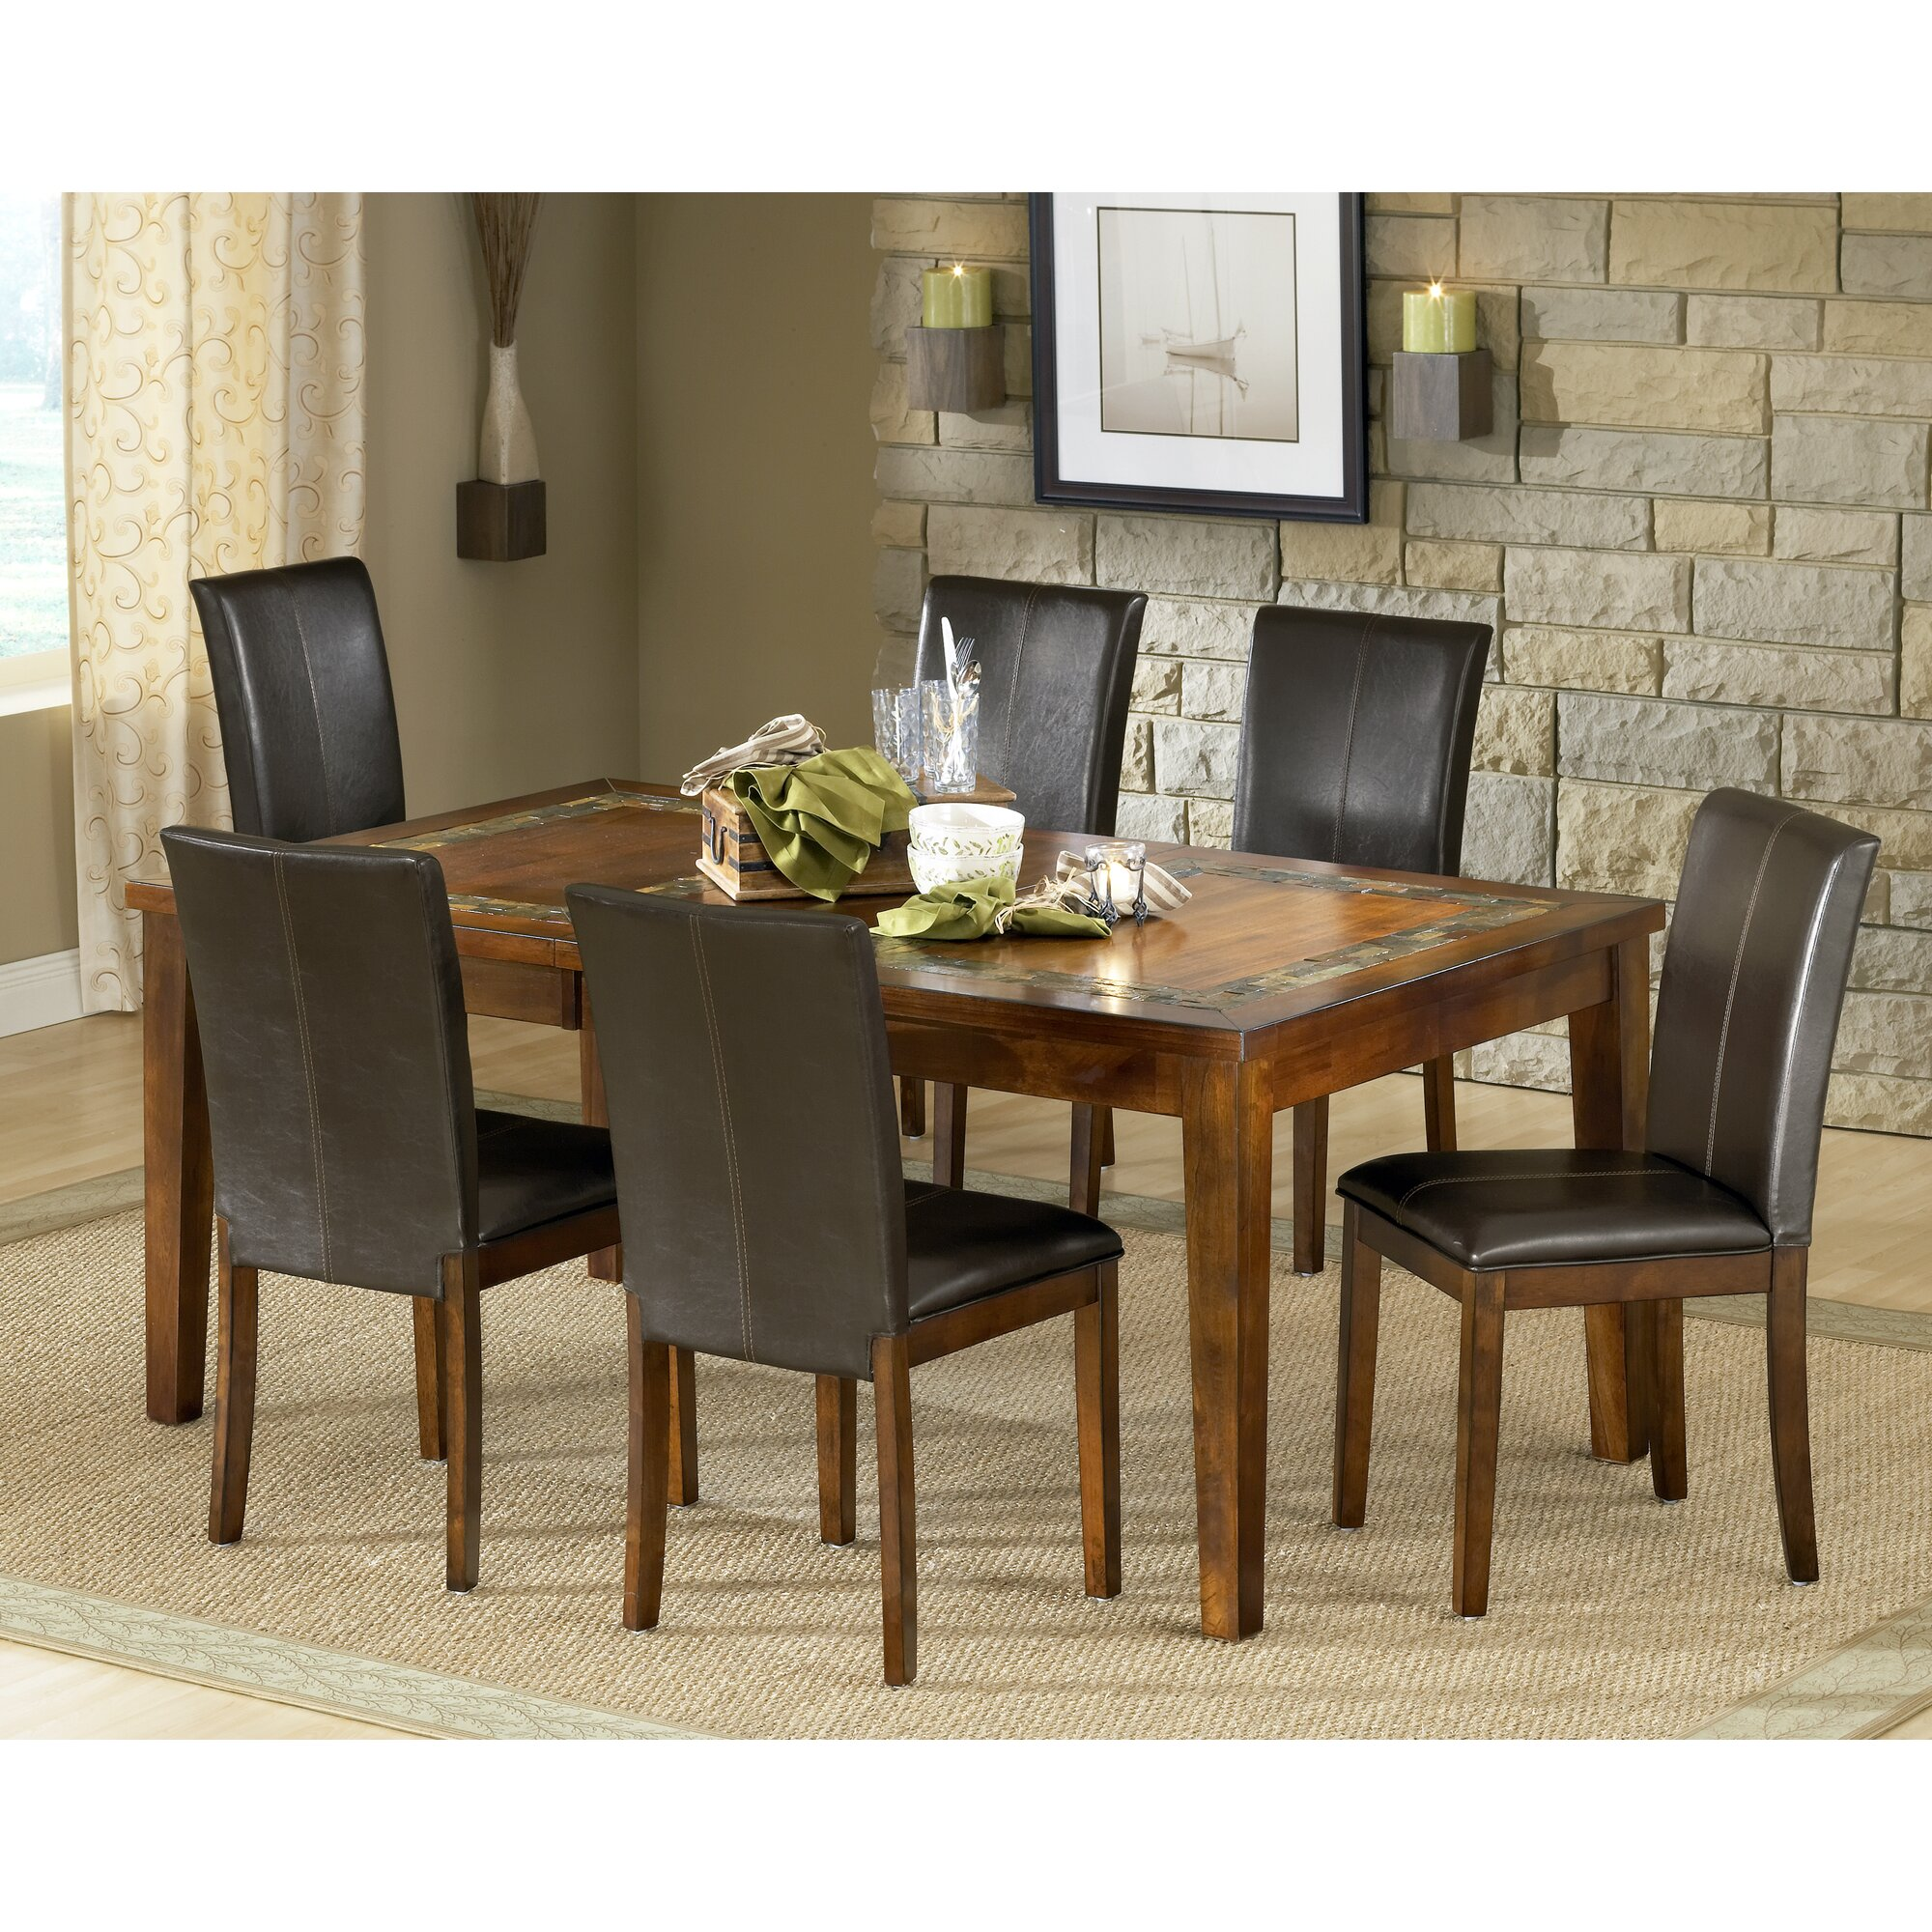 Steve silver furniture davenport dining table wayfair for Wayfair furniture dining tables